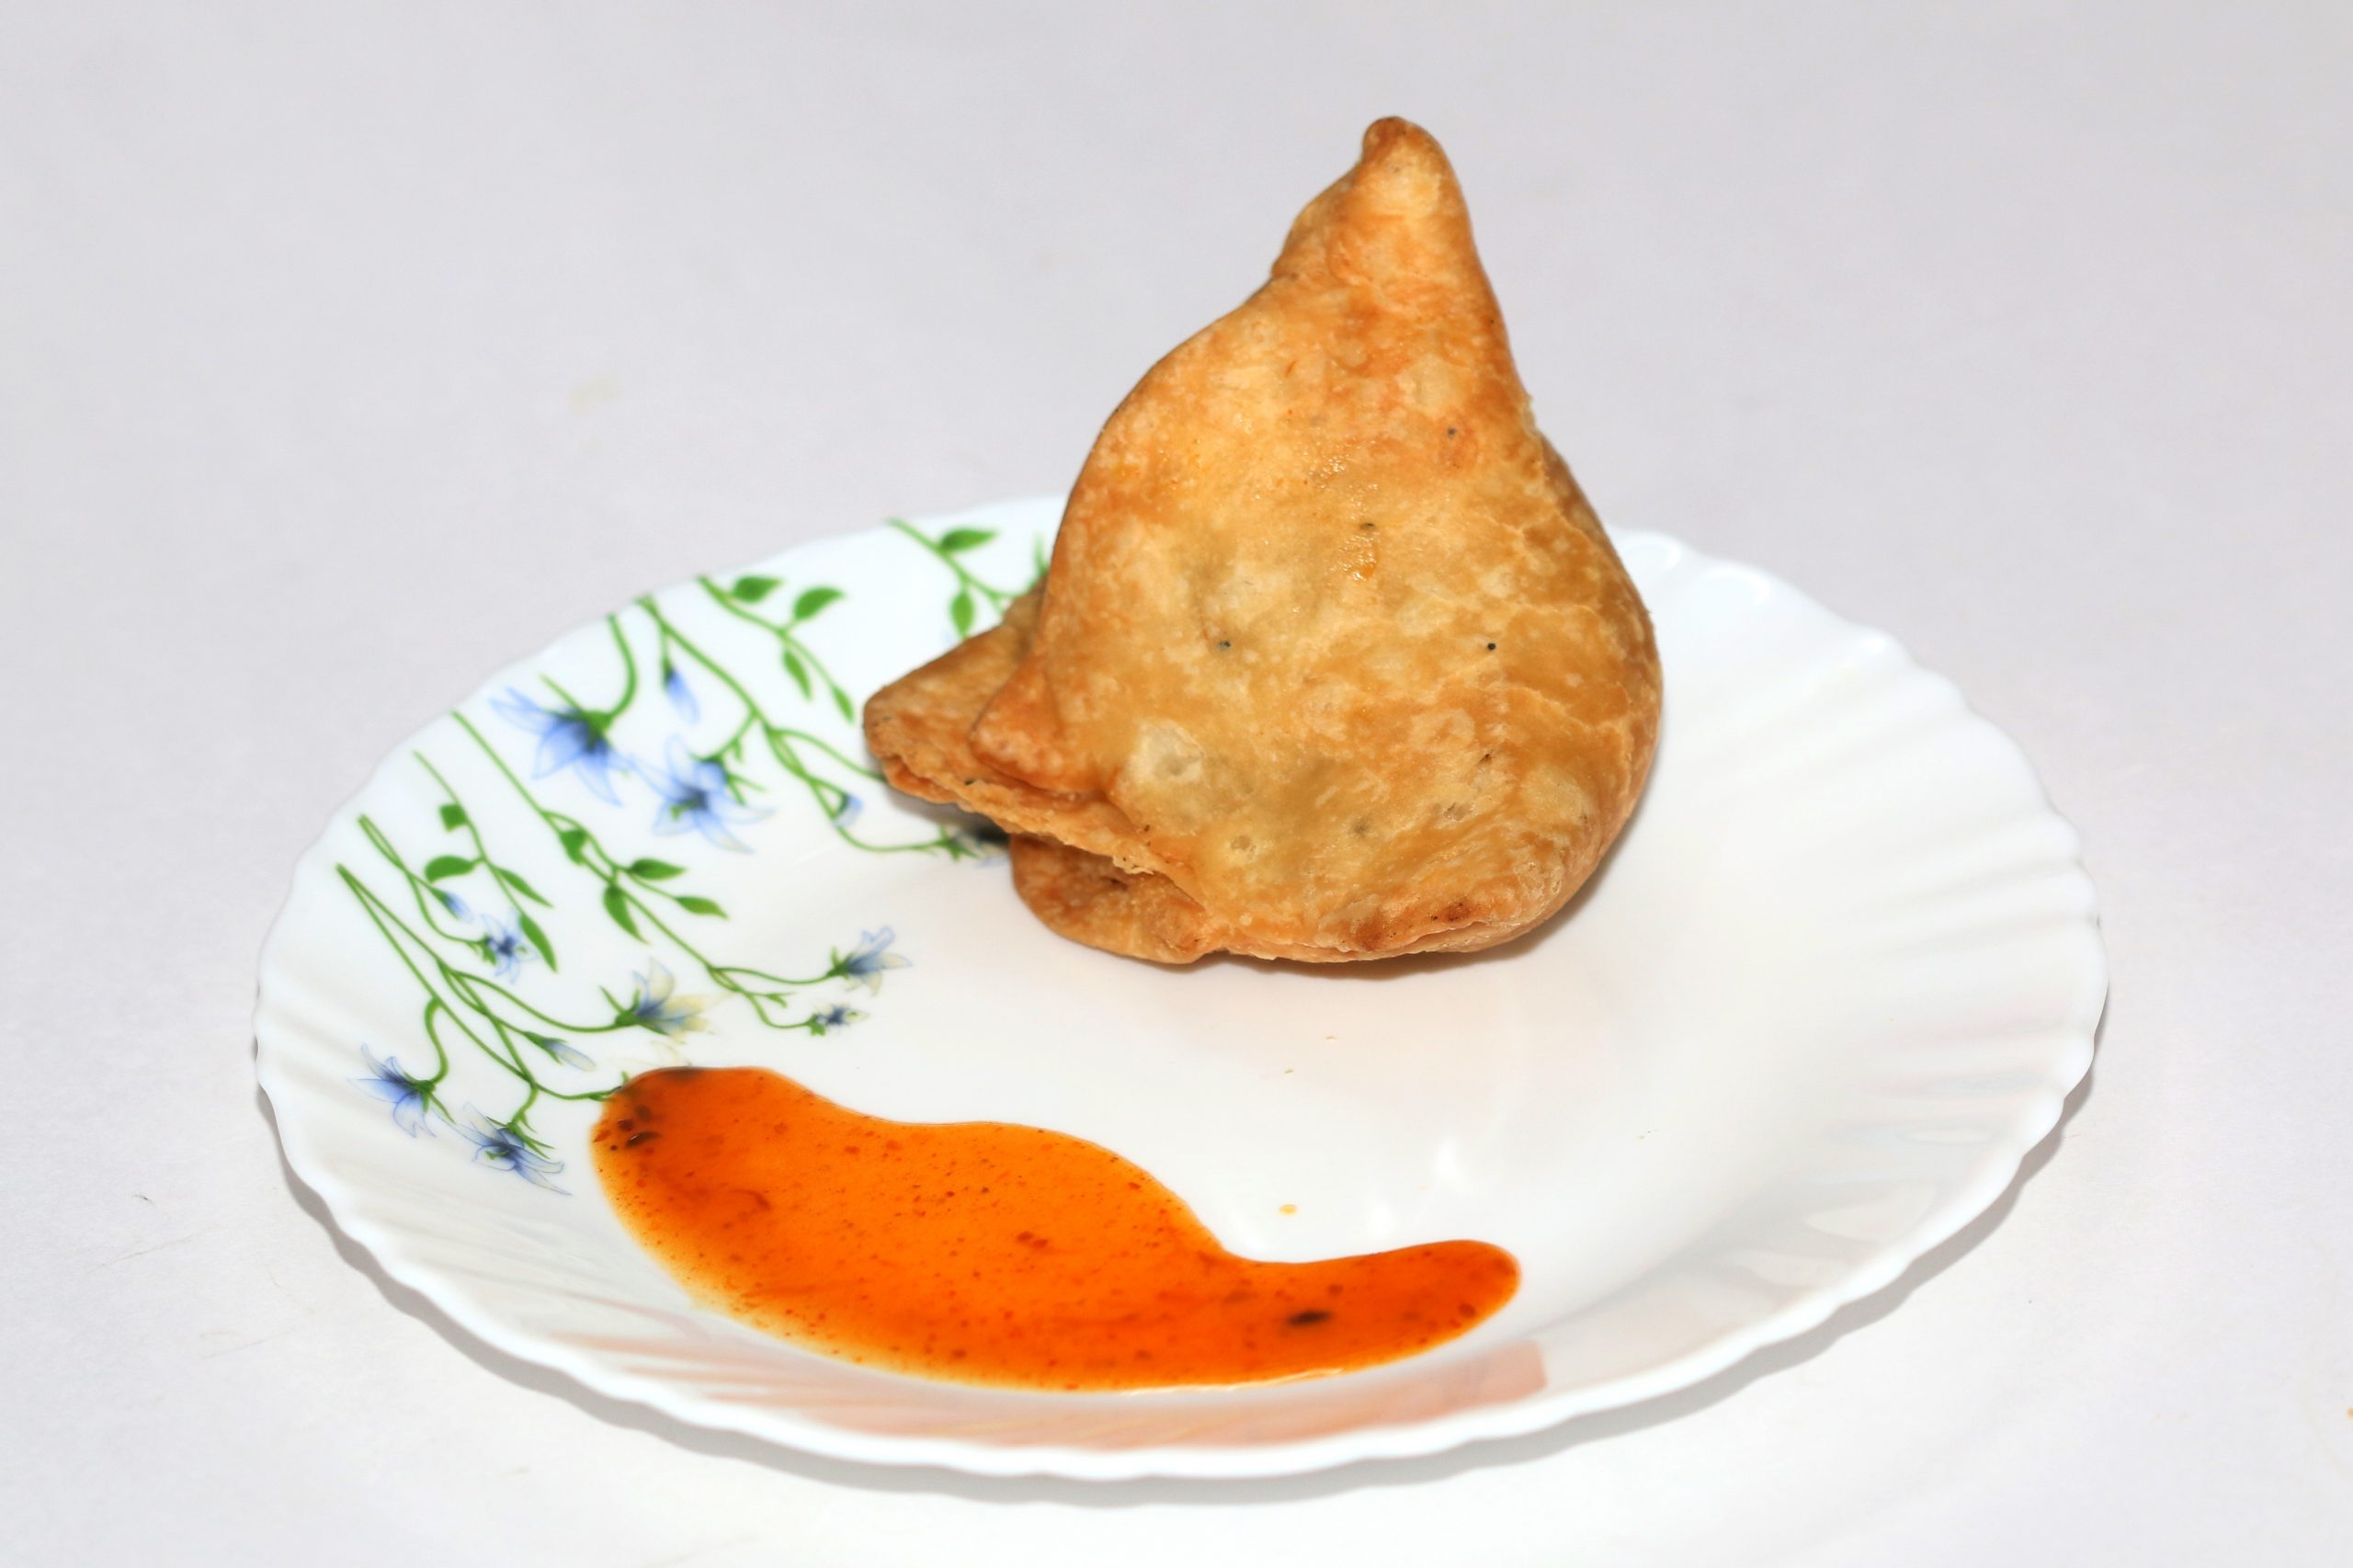 samosa and chutney in a plate